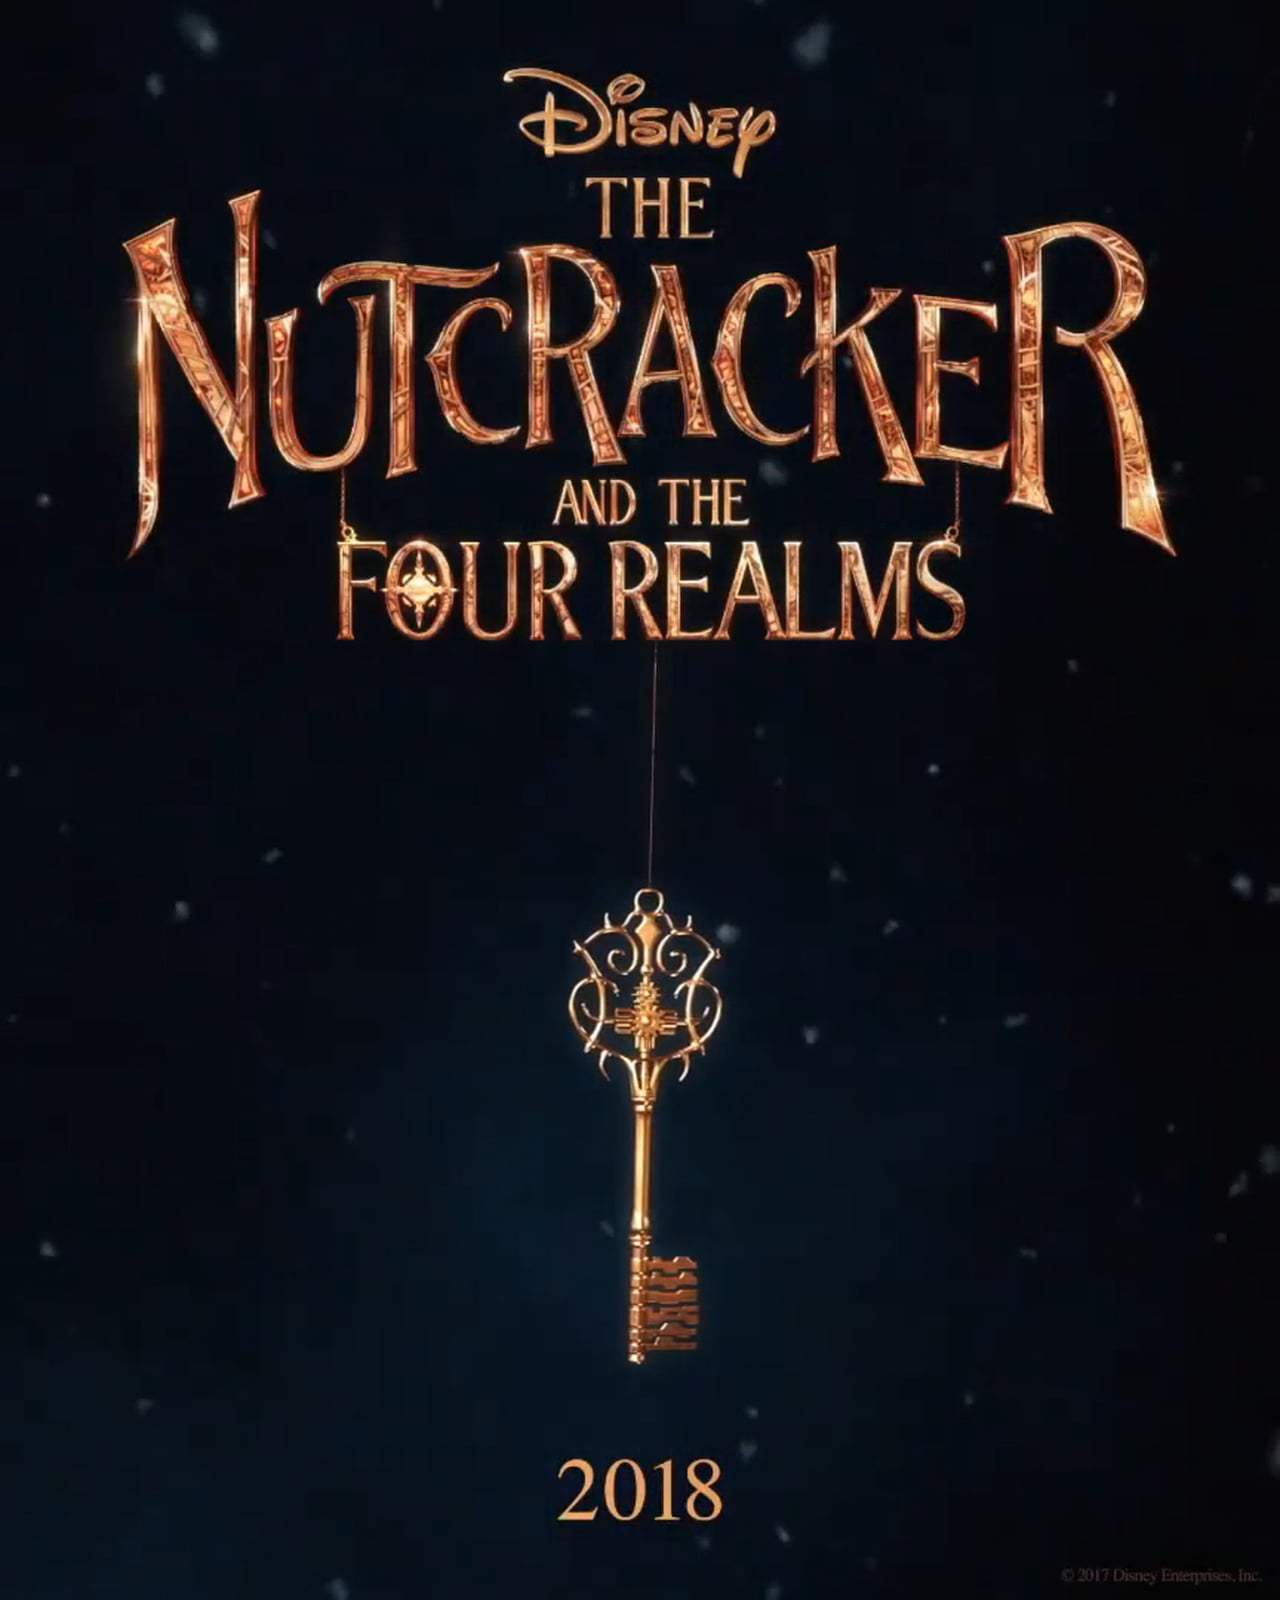 The Nutcracker and the Four Realms Motion Poster (2018)